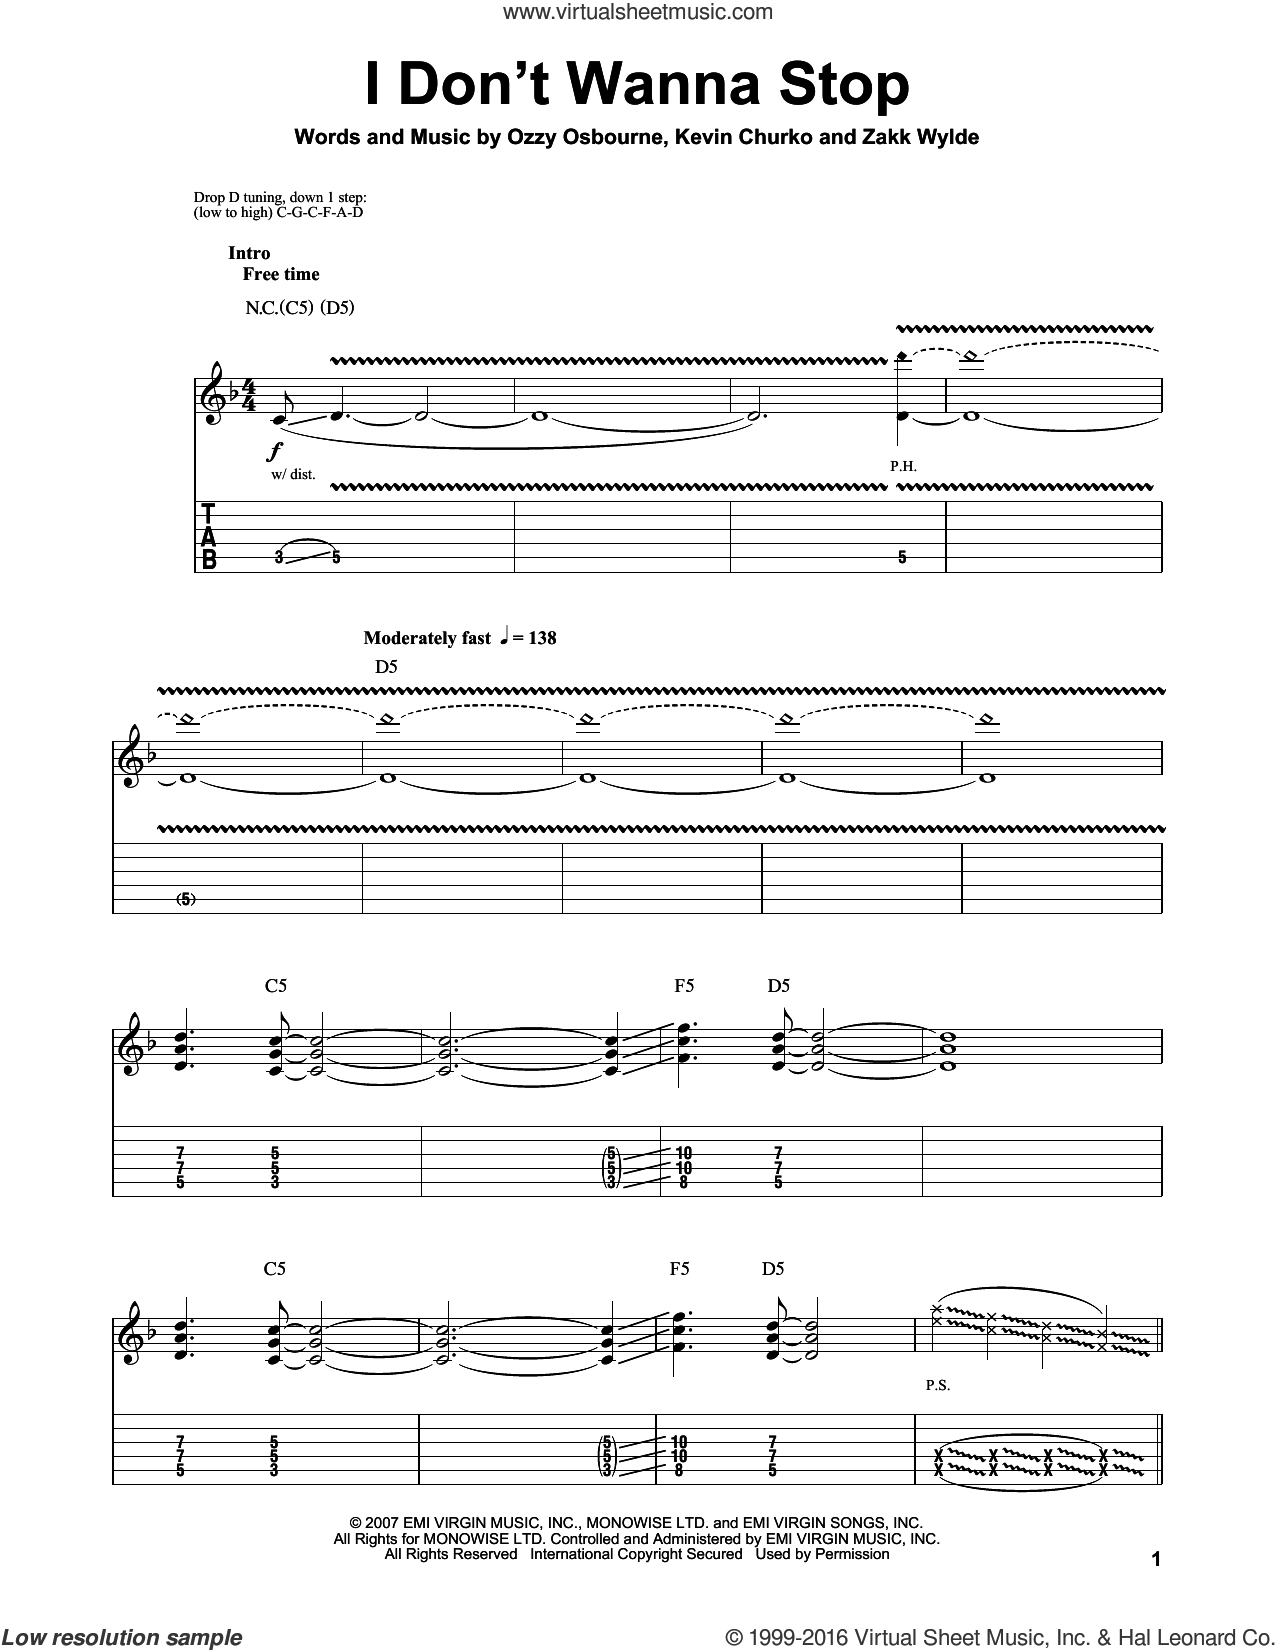 I Don't Wanna Stop sheet music for guitar (tablature, play-along) by Ozzy Osbourne, Kevin Churko and Zakk Wylde, intermediate